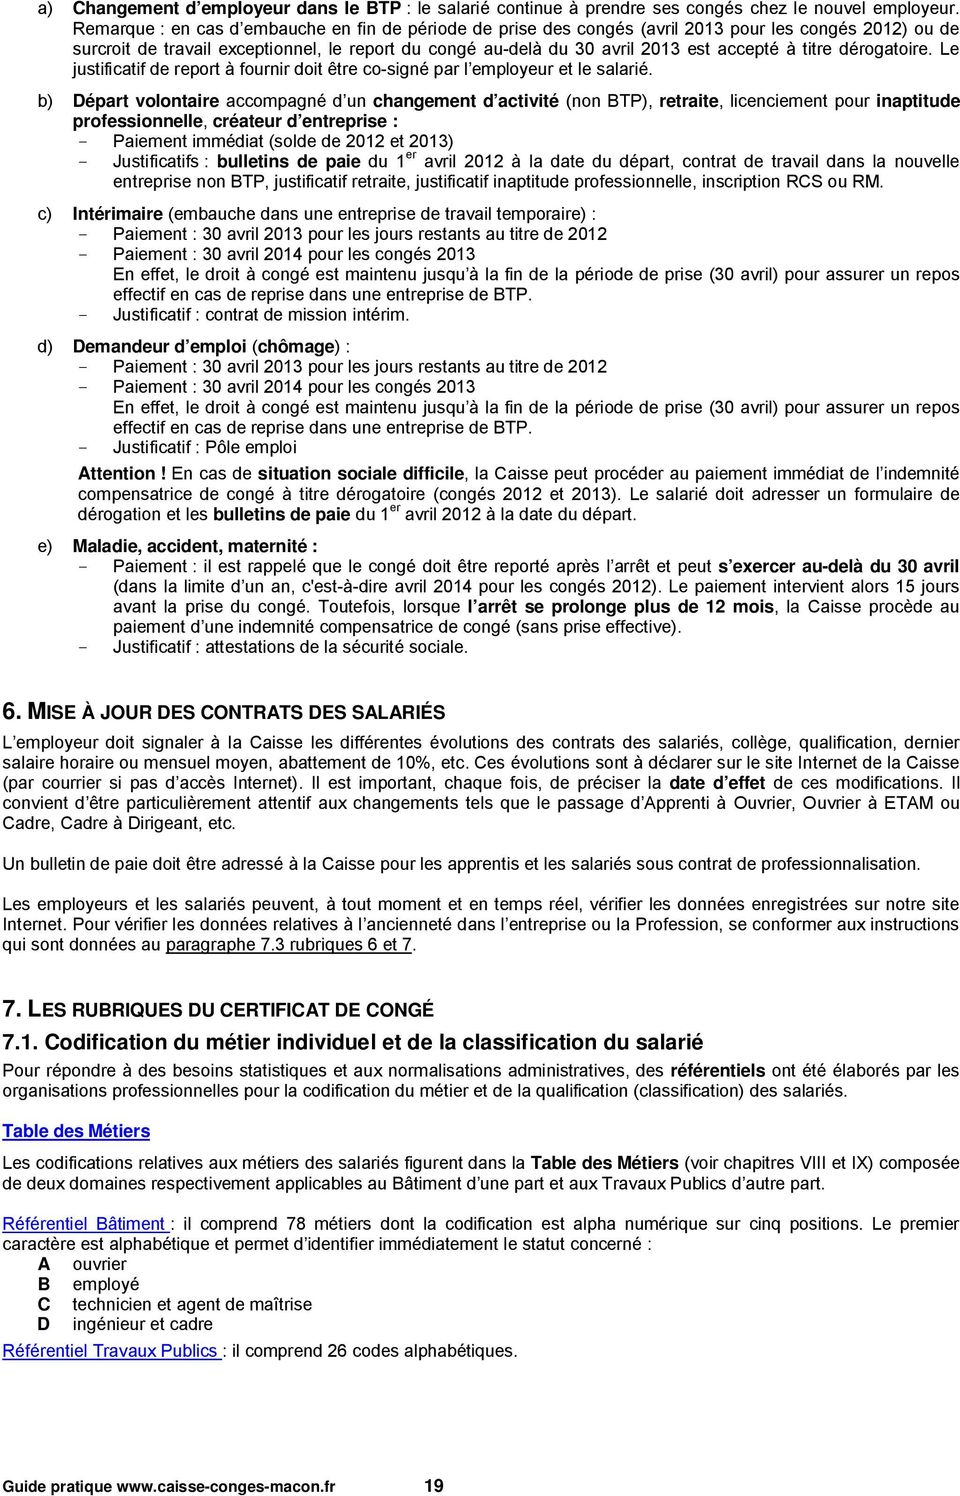 Guide Pratique De La Caisse Conges Intemperies Btp Pdf